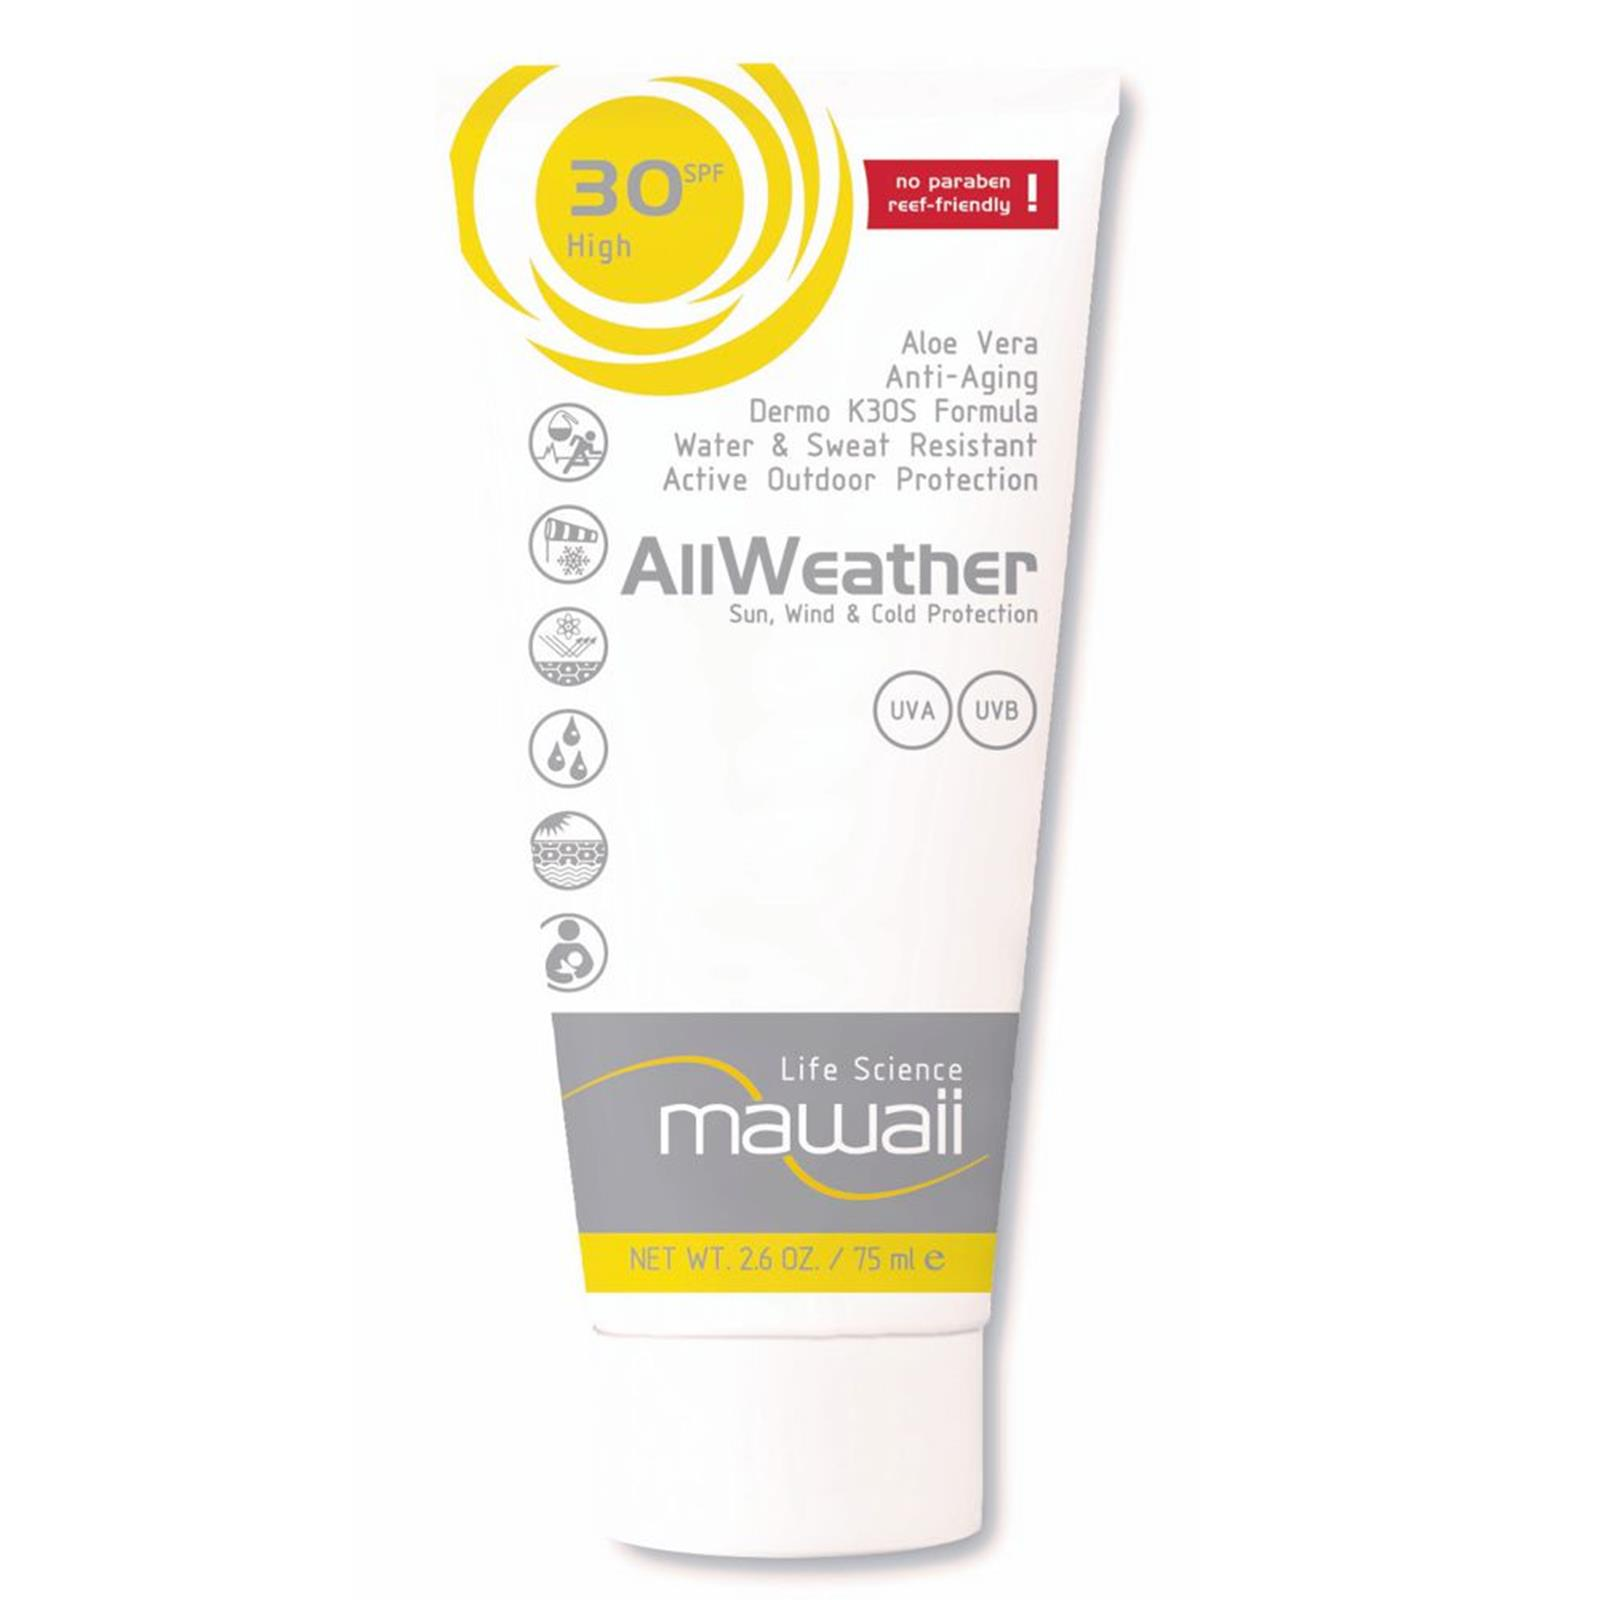 mawaii AllWeather Wind Sun Protection SPF 30  75ml